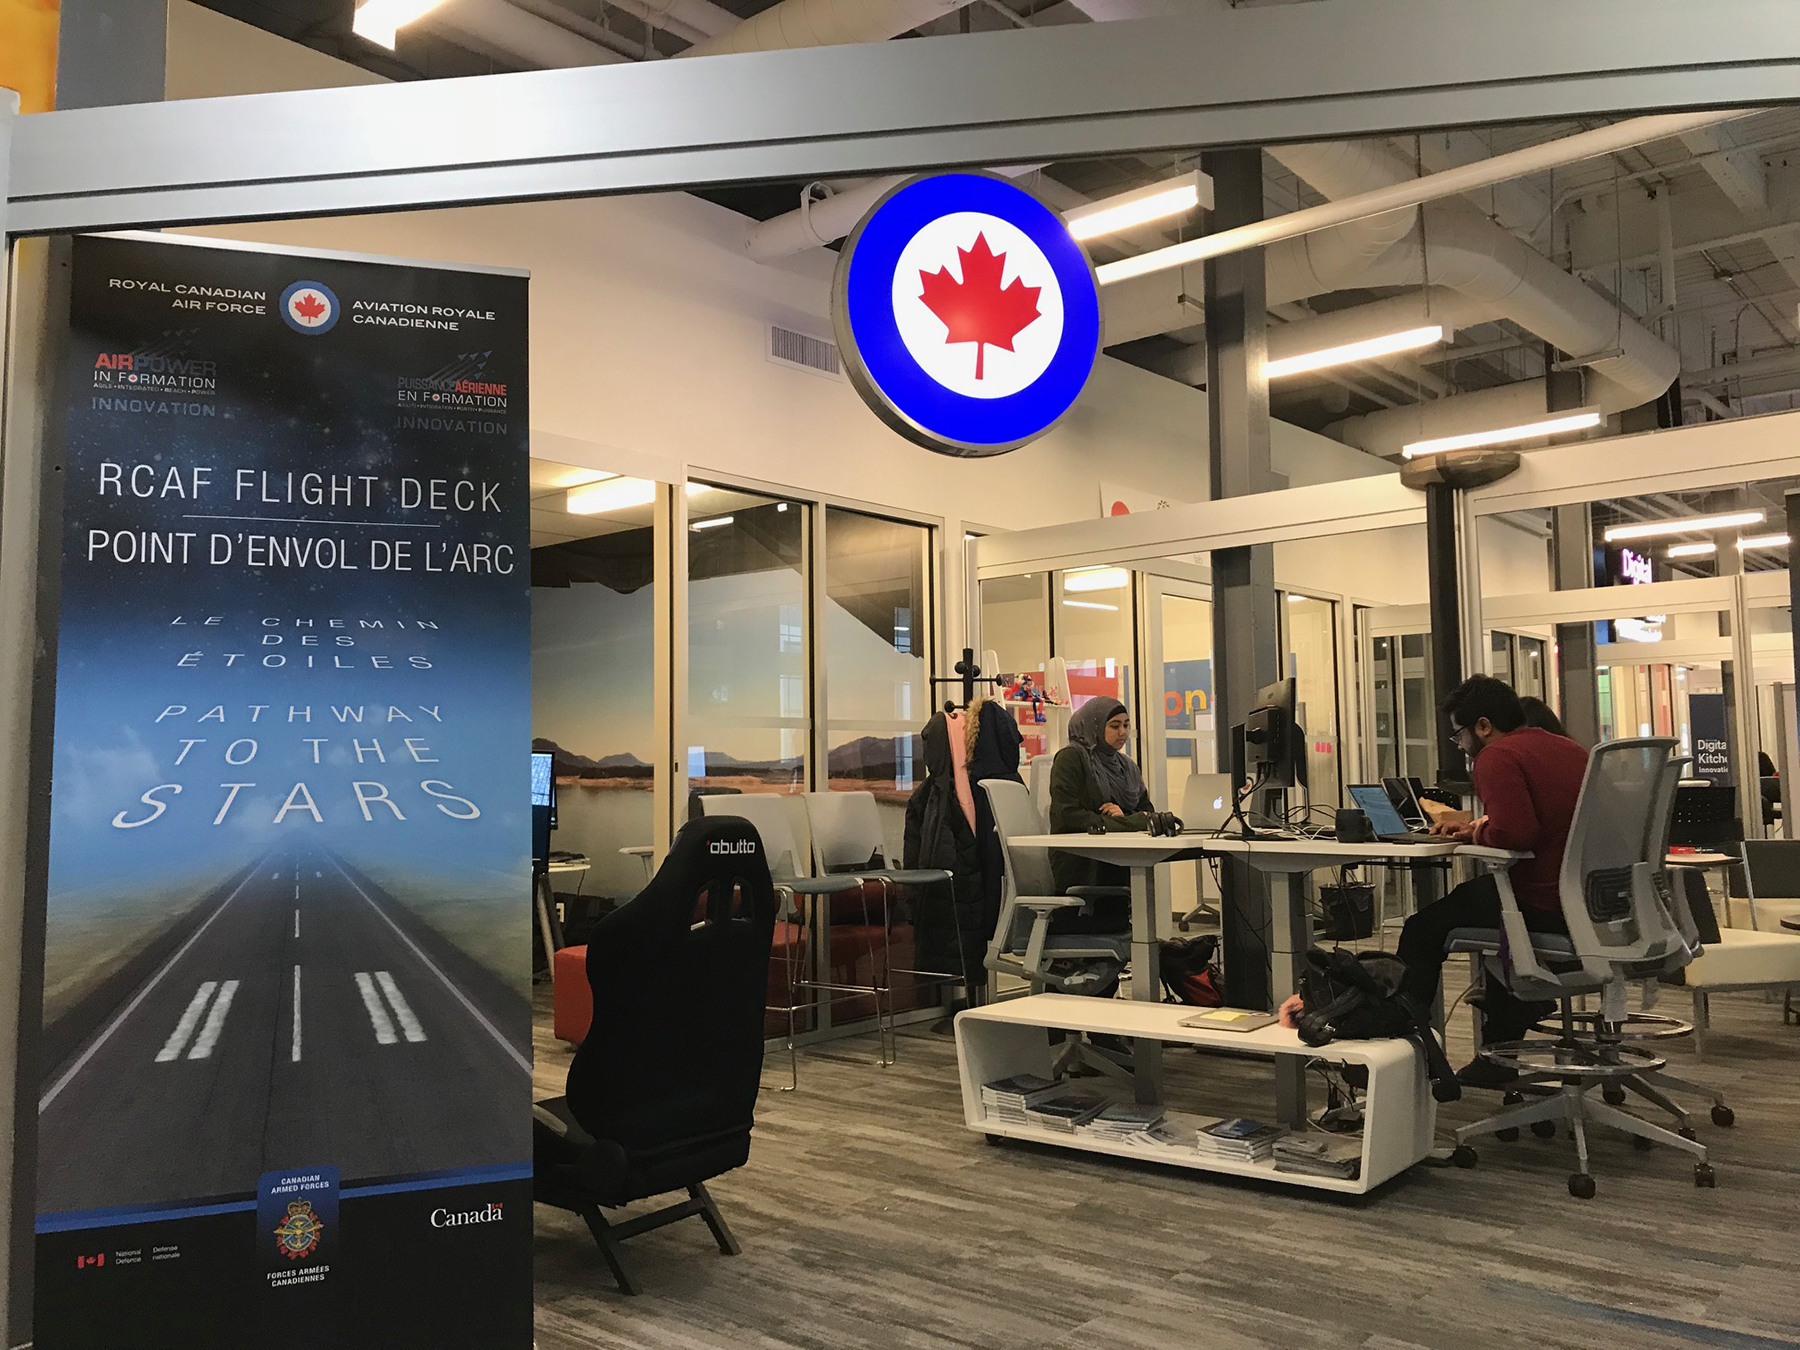 The Flight Deck, the RCAF's space in the Communitech Hub, allows a retooling of the way Canada's Air Force approaches technology and keeps an eye out for startups that can help it solve real-world problems. PHOTO: DND